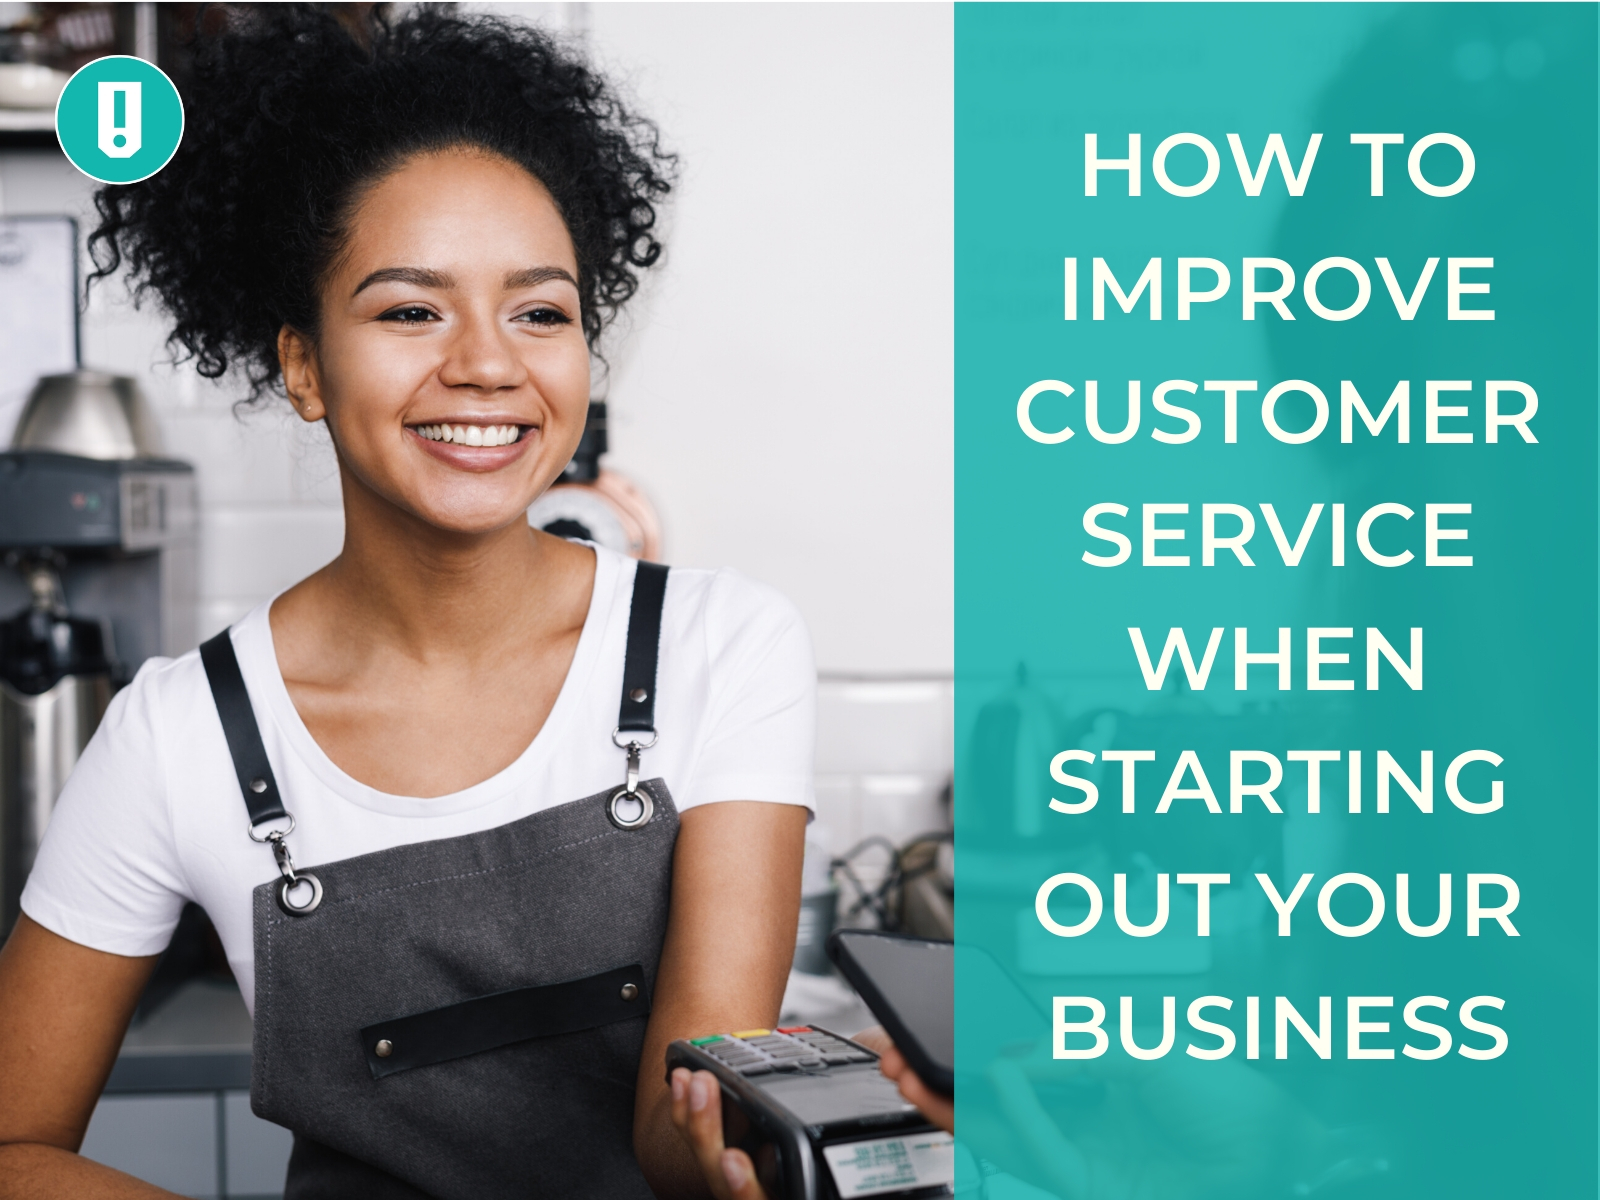 How to Improve Customer Service When Starting out Your Business